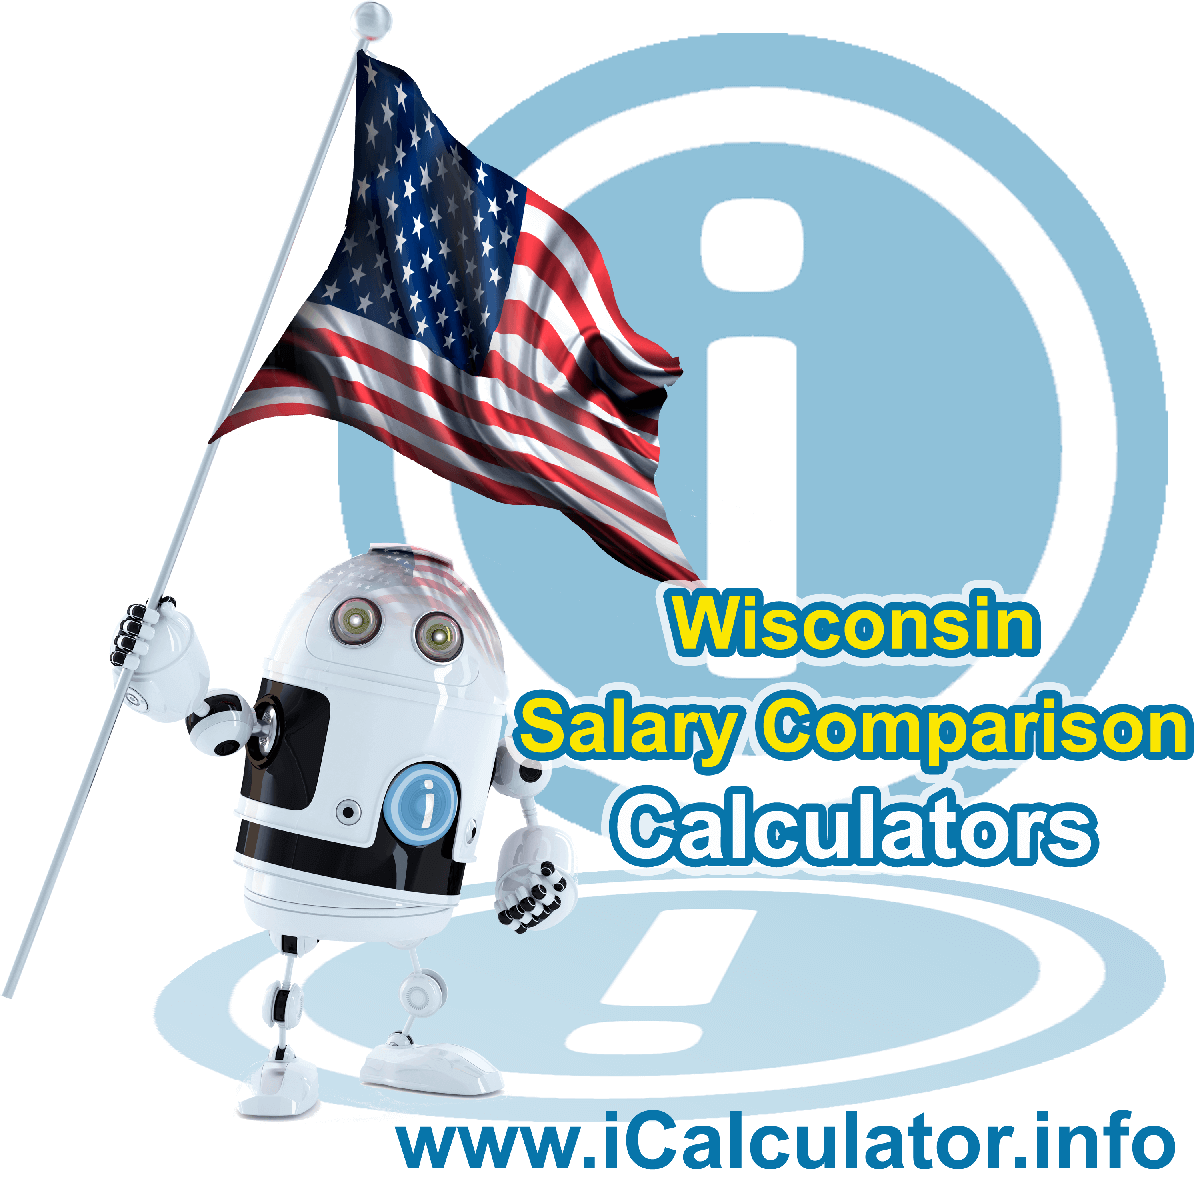 Wisconsin Salary Comparison Calculator 2019 | iCalculator | The Wisconsin Salary Comparison Calculator allows you to quickly calculate and compare upto 6 salaries in Wisconsin or between other states for the 2019 tax year and historical tax years. Its an excellent tool for jobseekers, pay raise comparison and comparison of salaries between different US States